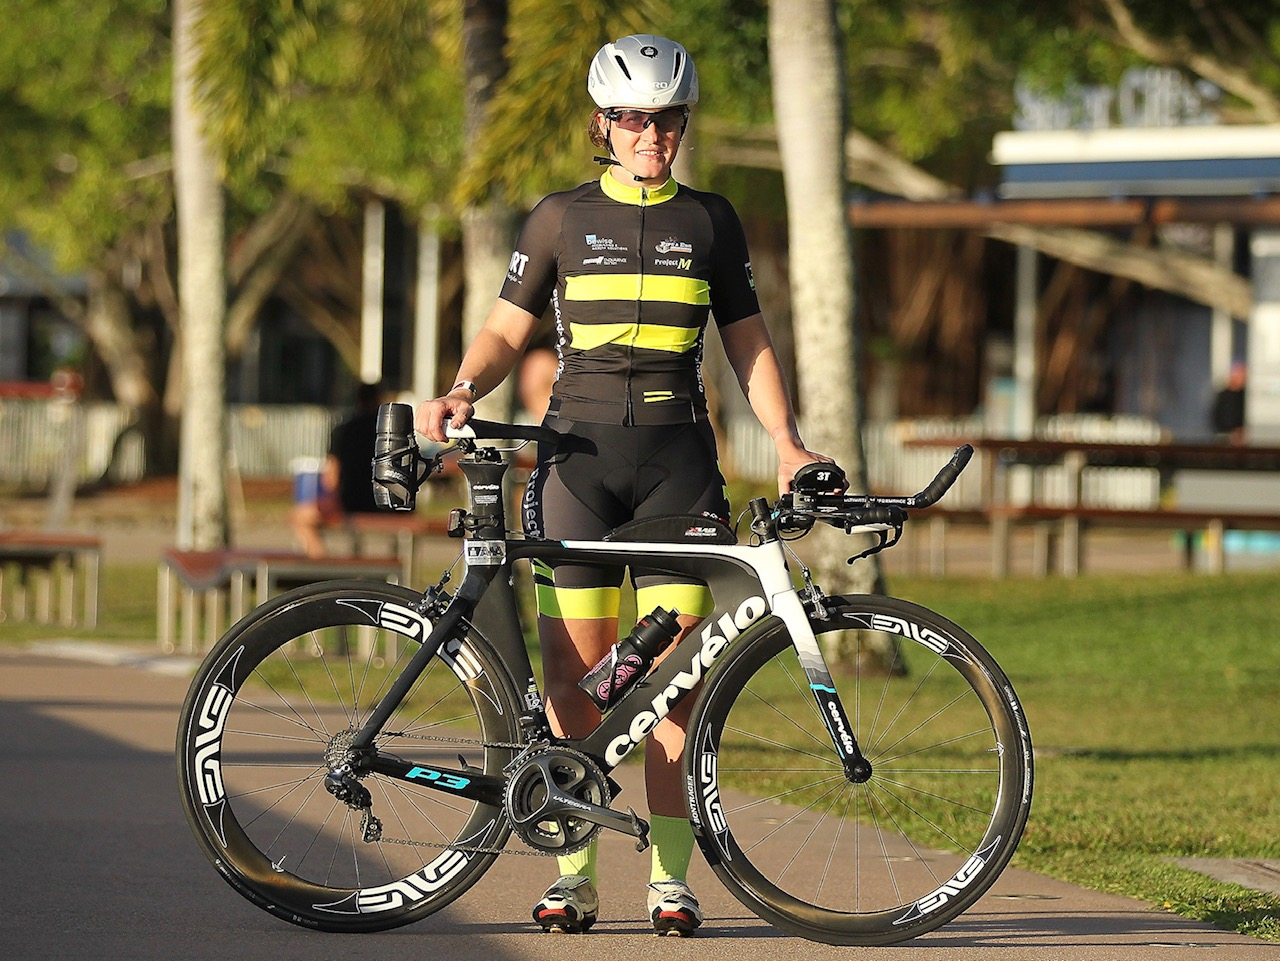 BiciSport will be assisting the Project M Womens Team from Kiama at Singleton TTT in early August